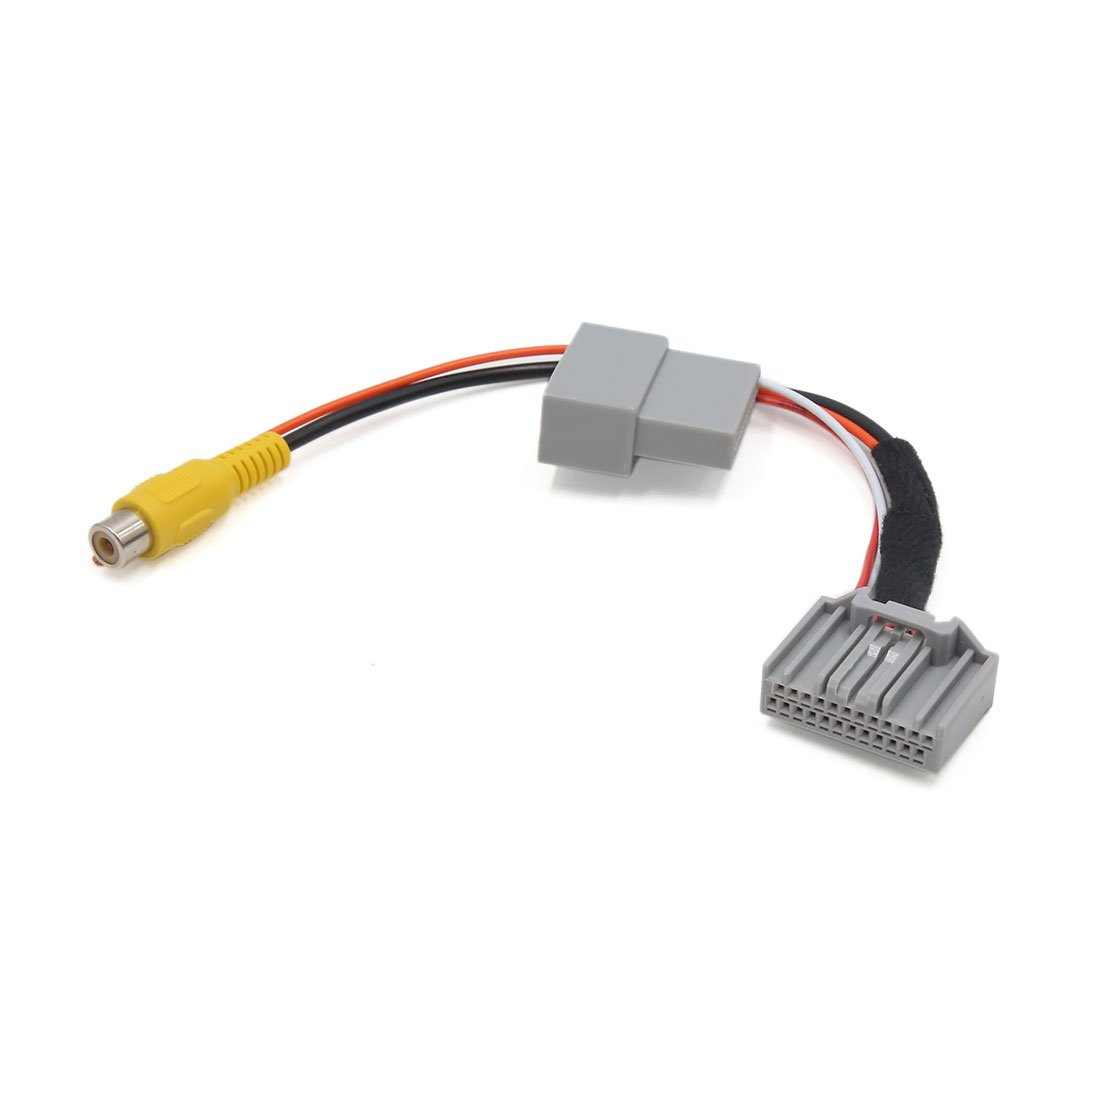 uxcell Car Navigation Reverse Rear View Camera Cable Dual Adapter for Honda Accord 2.4